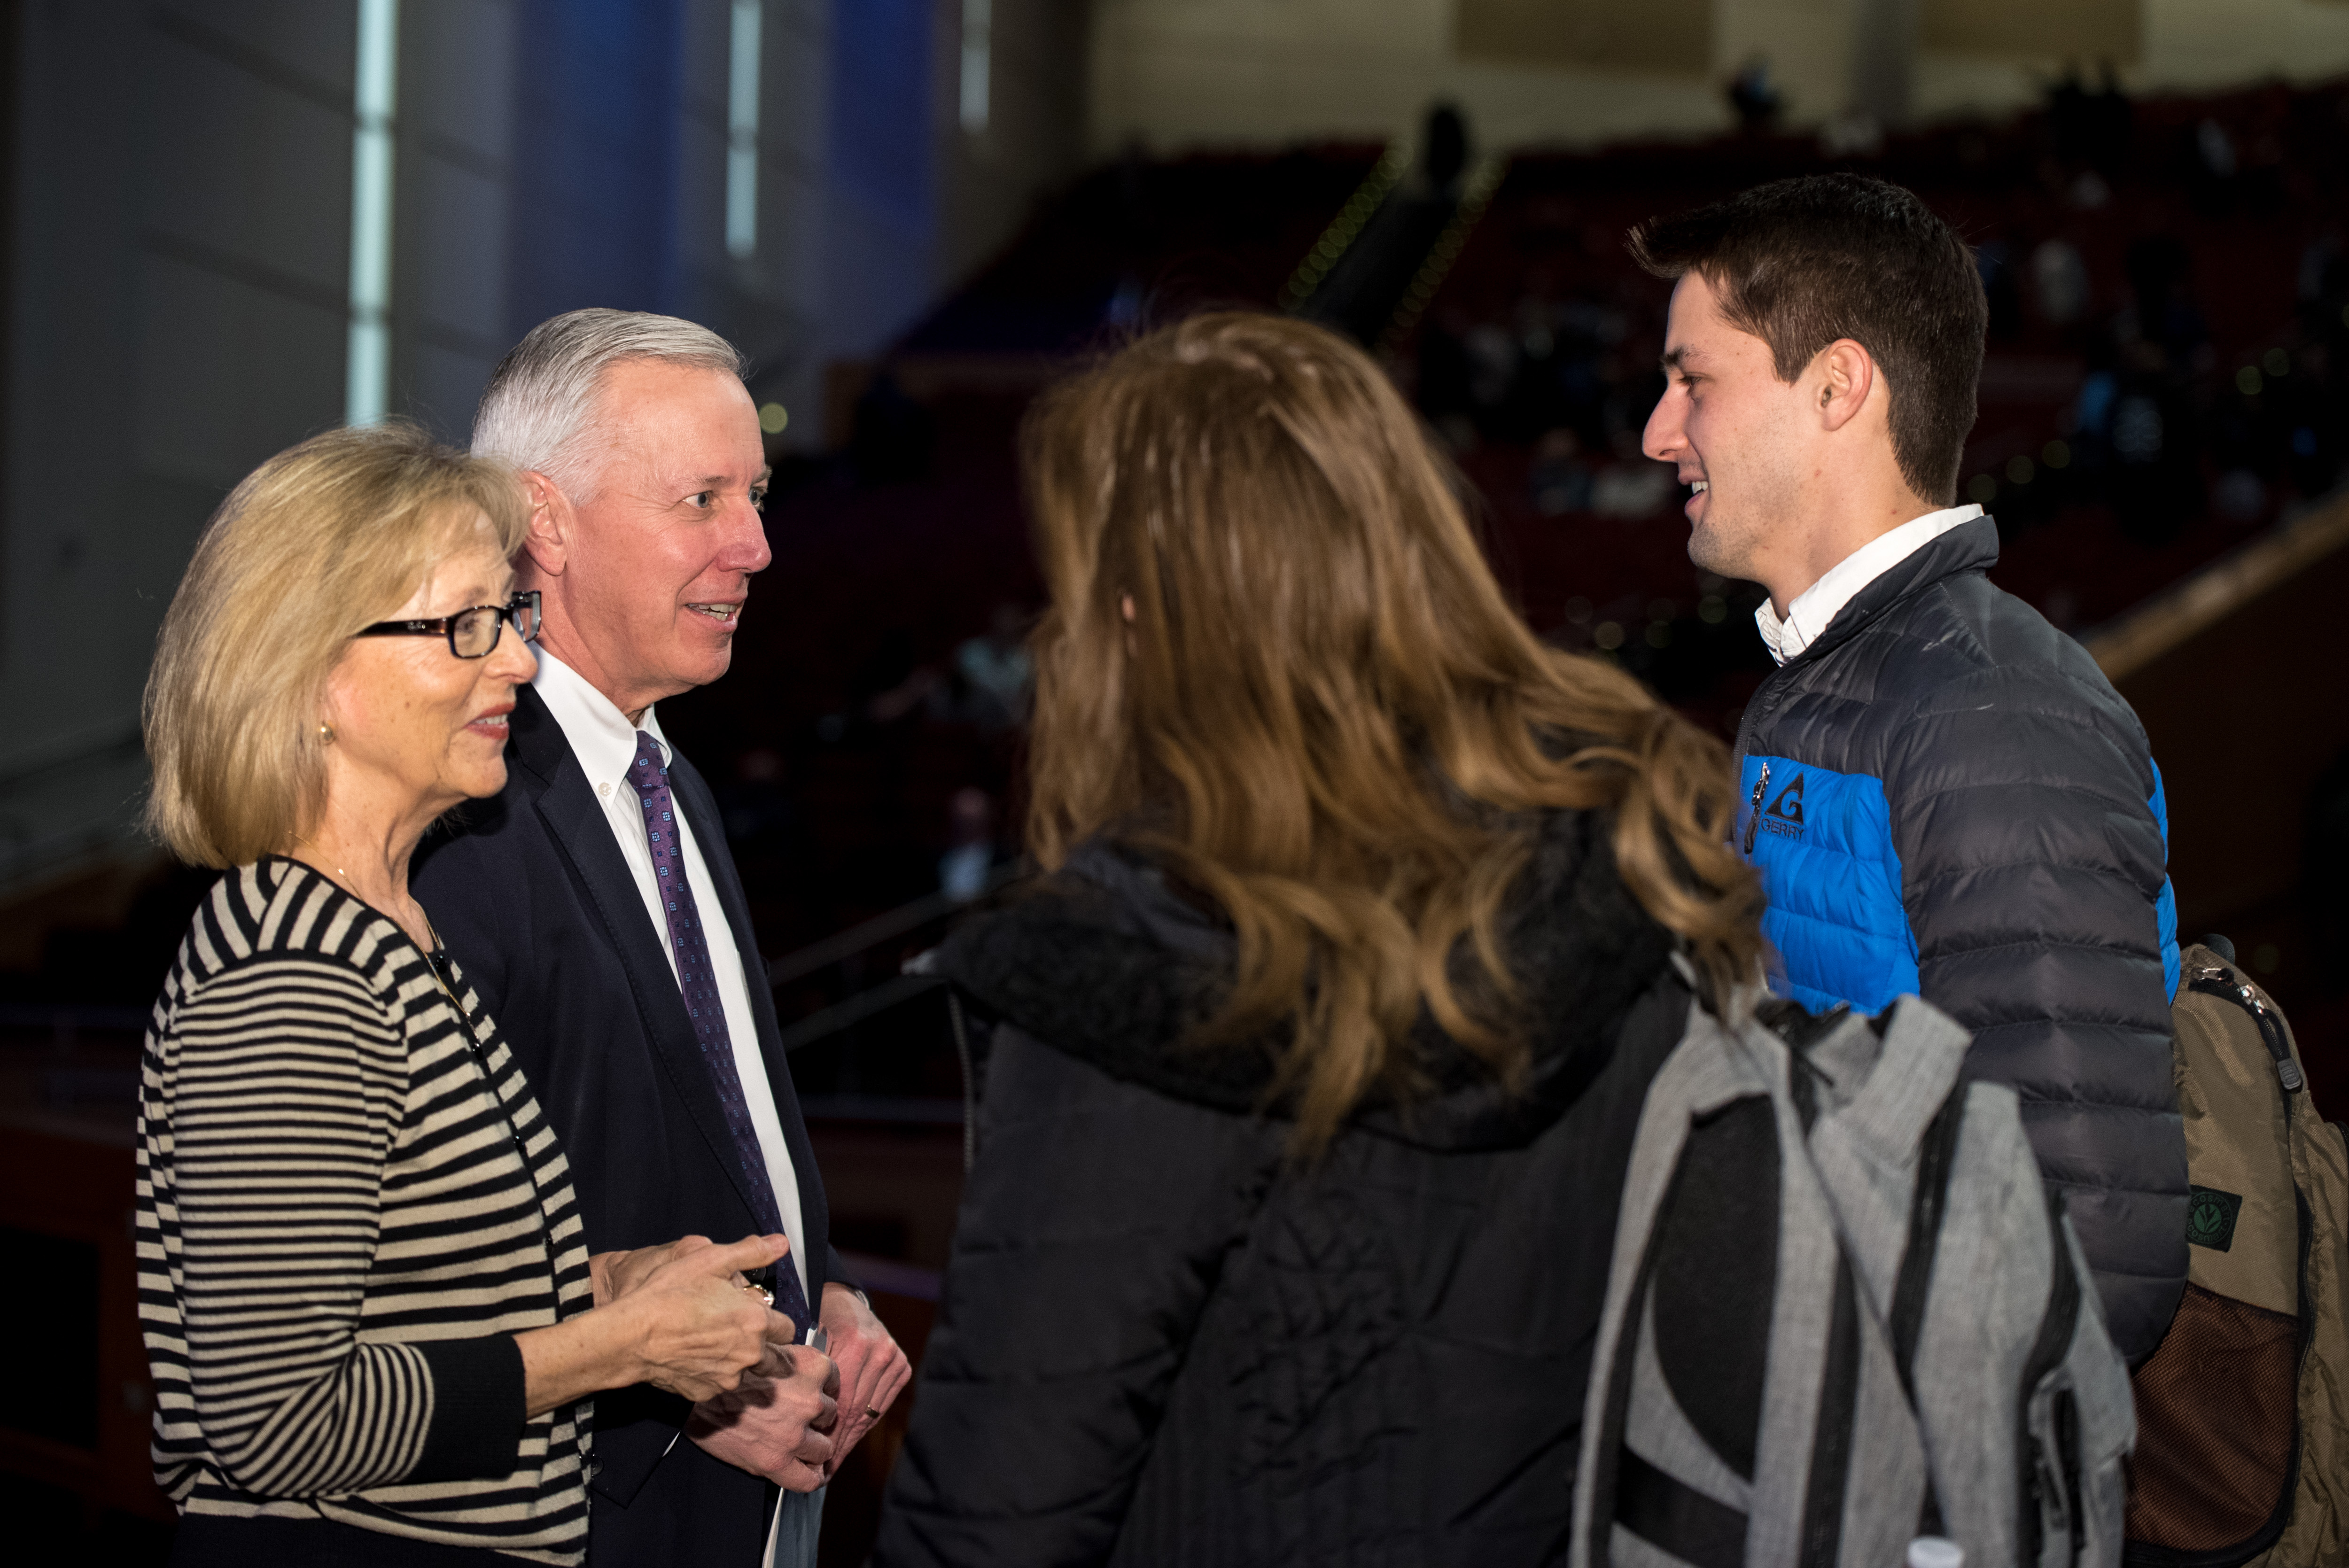 Elder Kevin S. Hamilton, General Authority Seventy, and his wife, Sister Claudia Hamilton, greet students following a BYU-Idaho devotional on March 12, 2019.